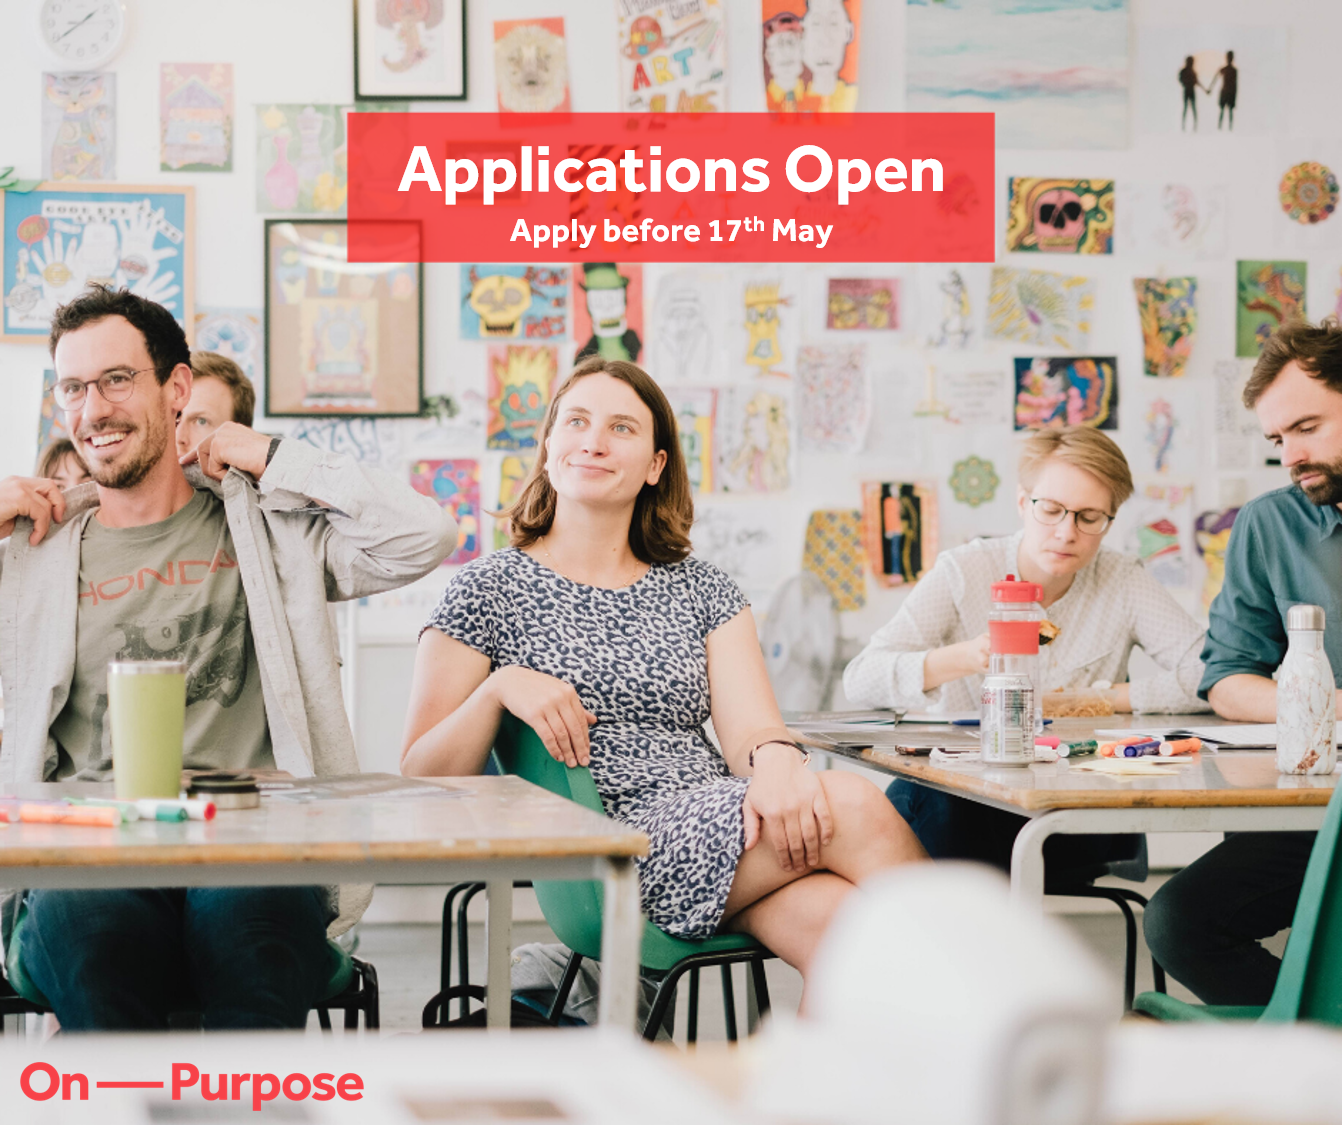 On Purpose – Applications Open for Associate Programme – October 2020 Cohort